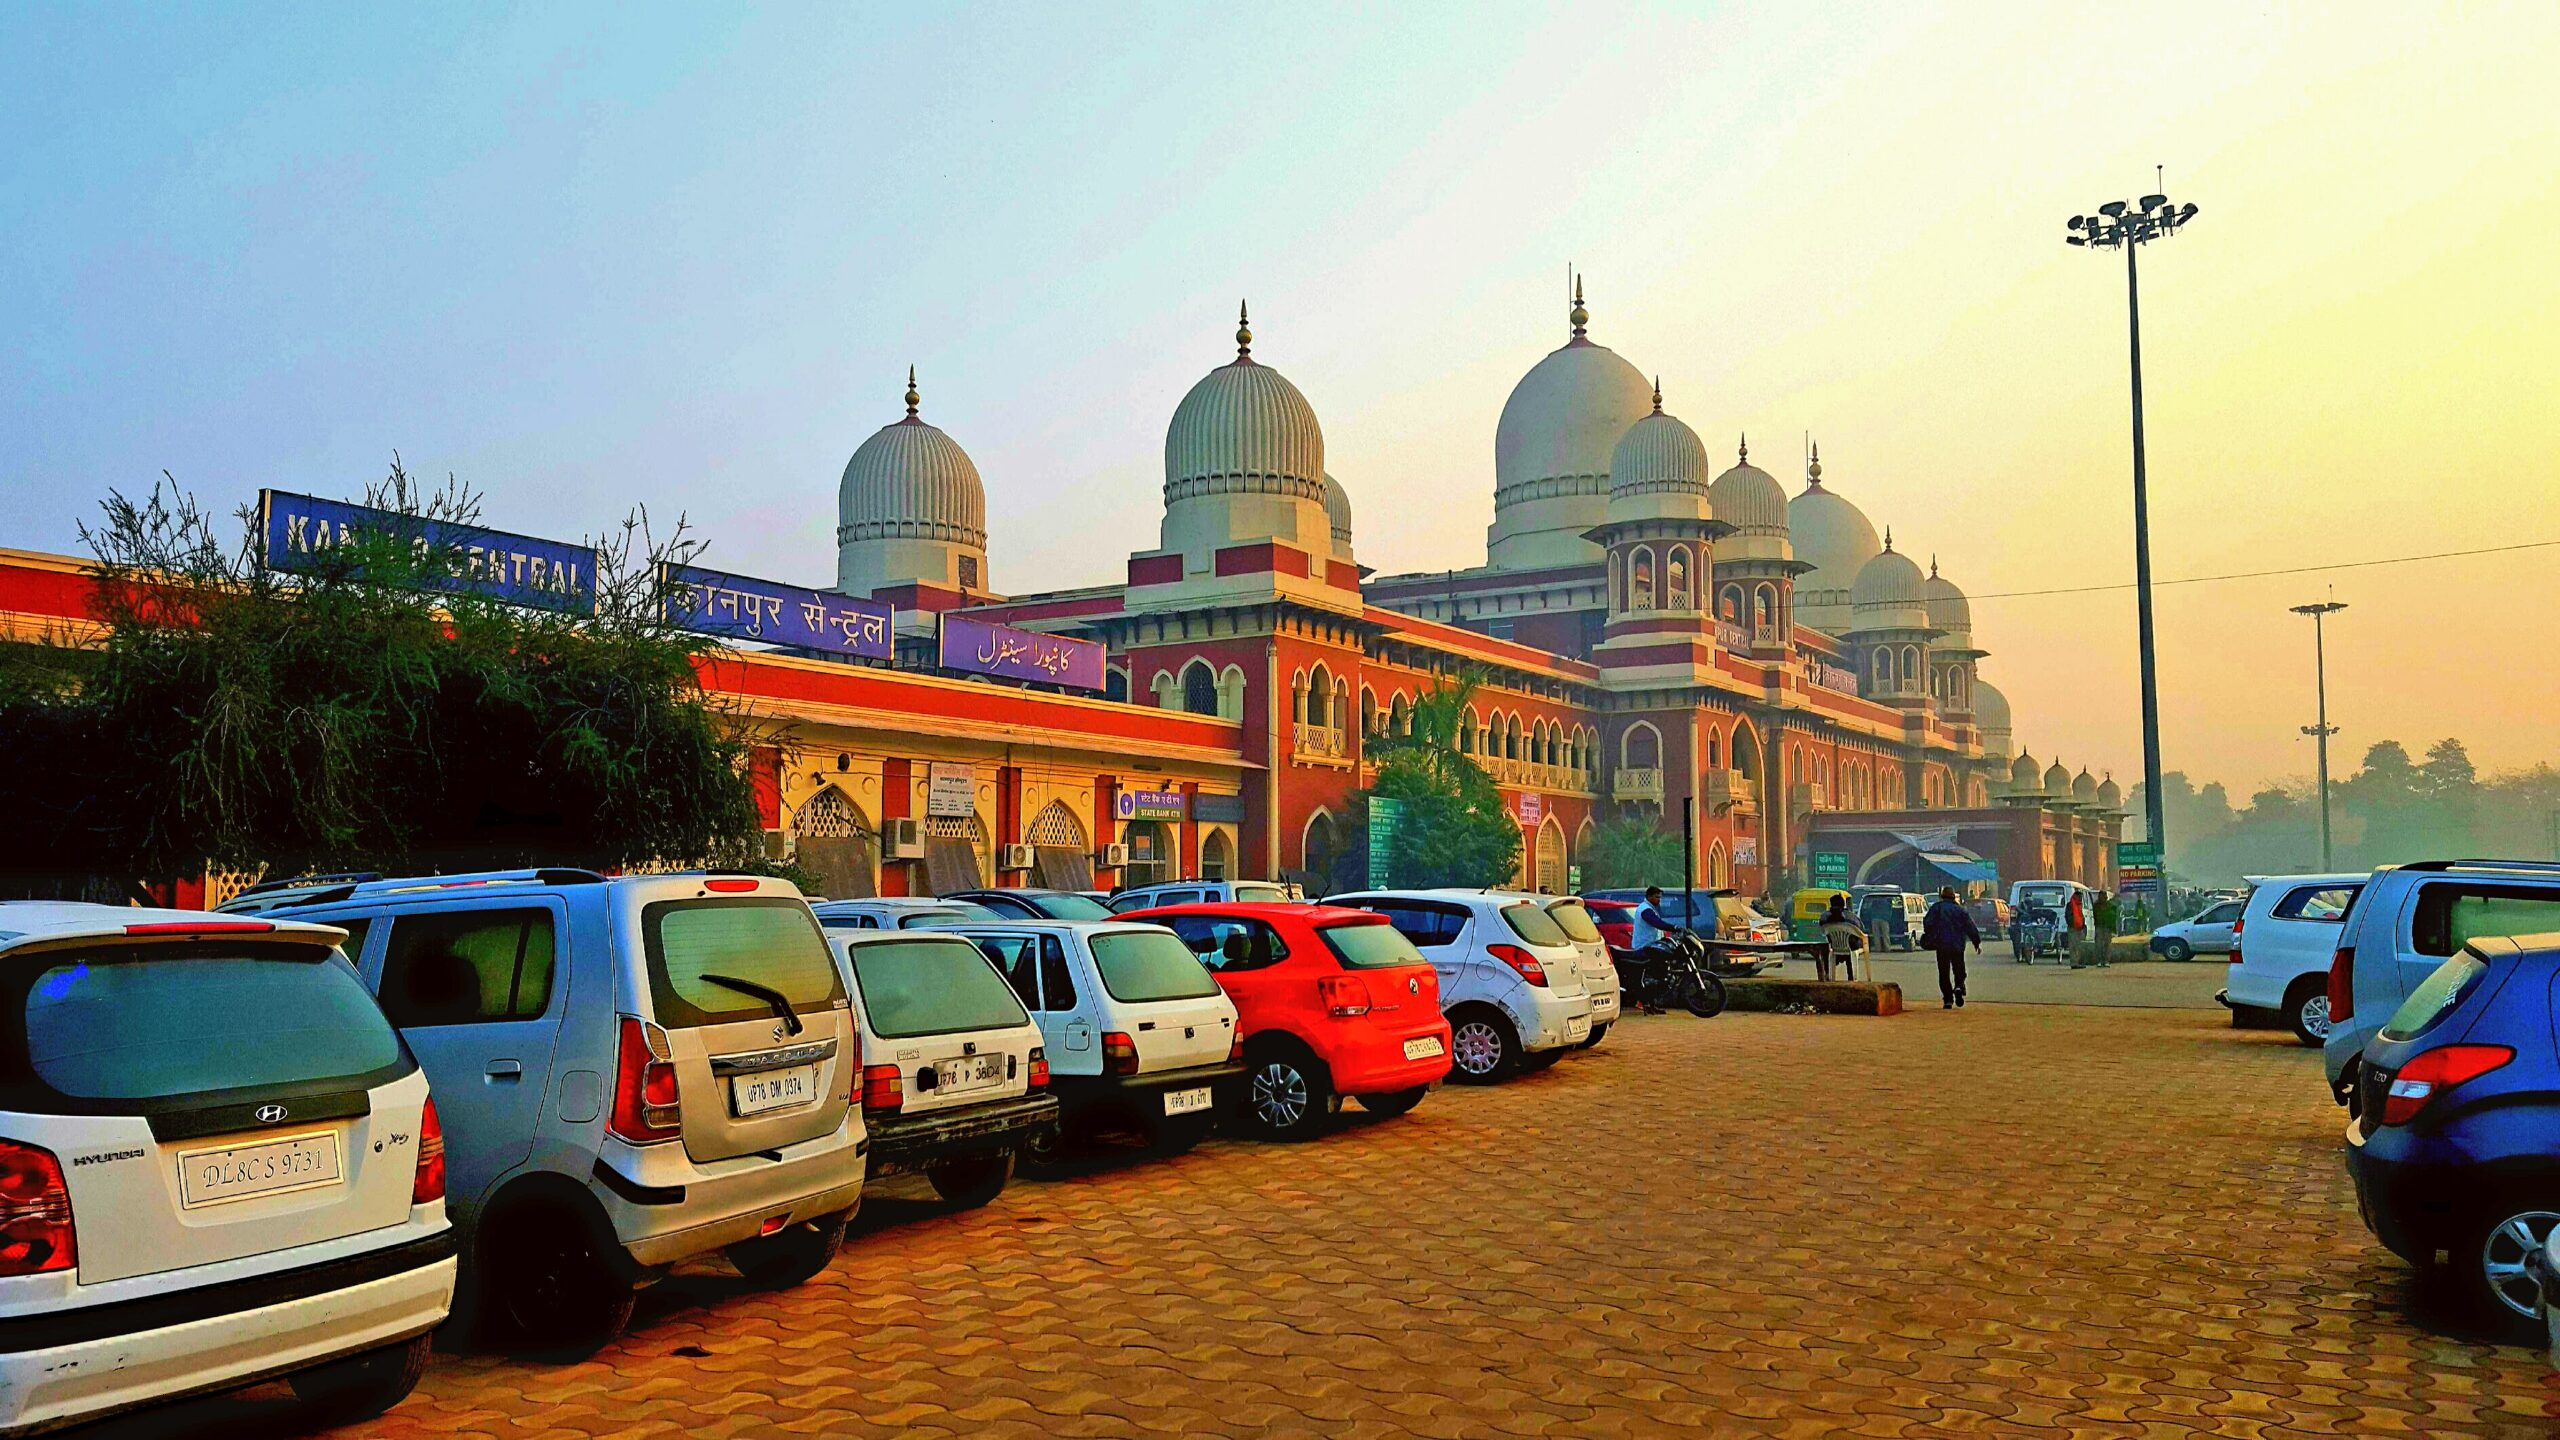 Kanpur_Central_Station.